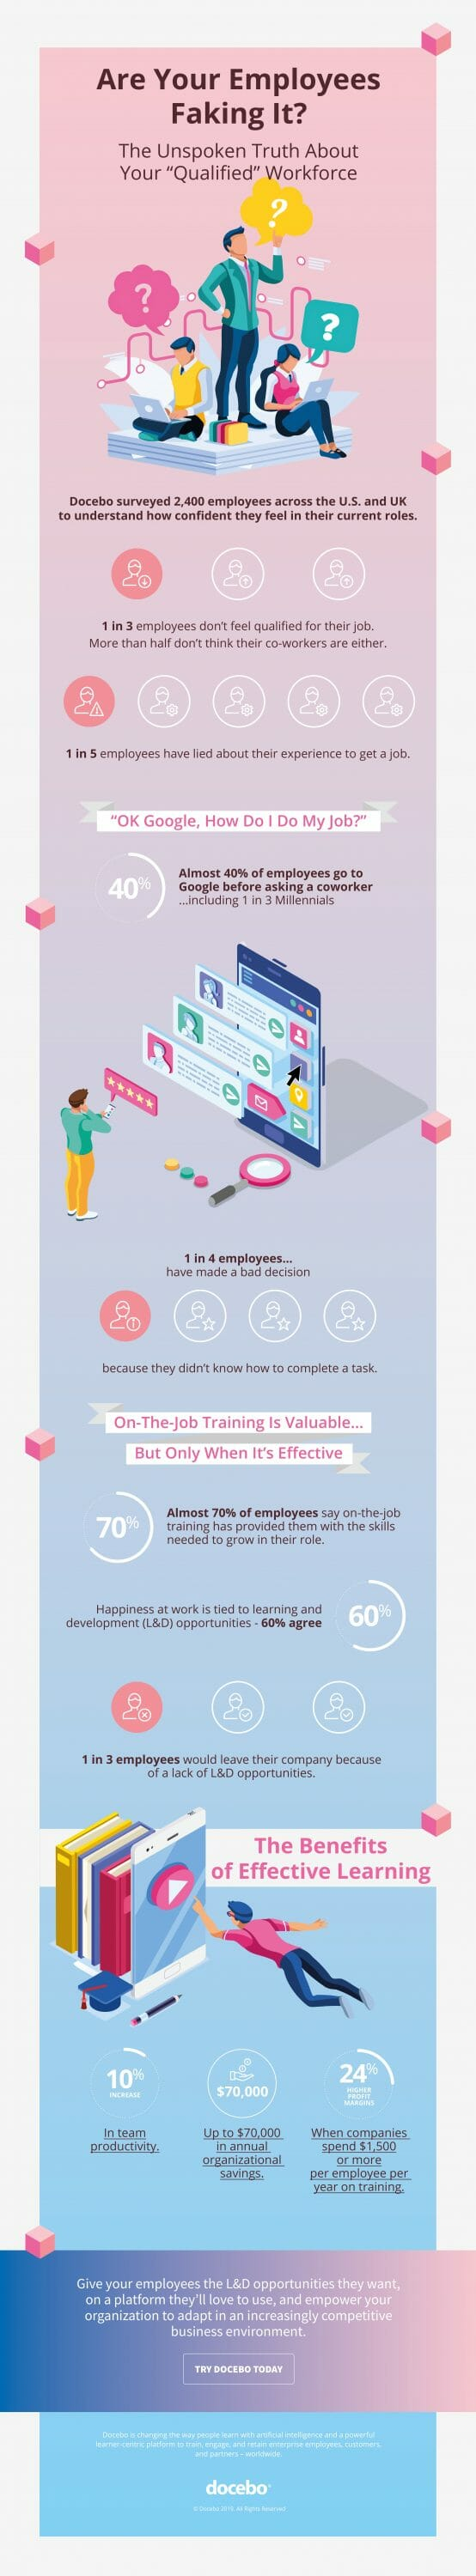 Infographic - Are your employees faking it?